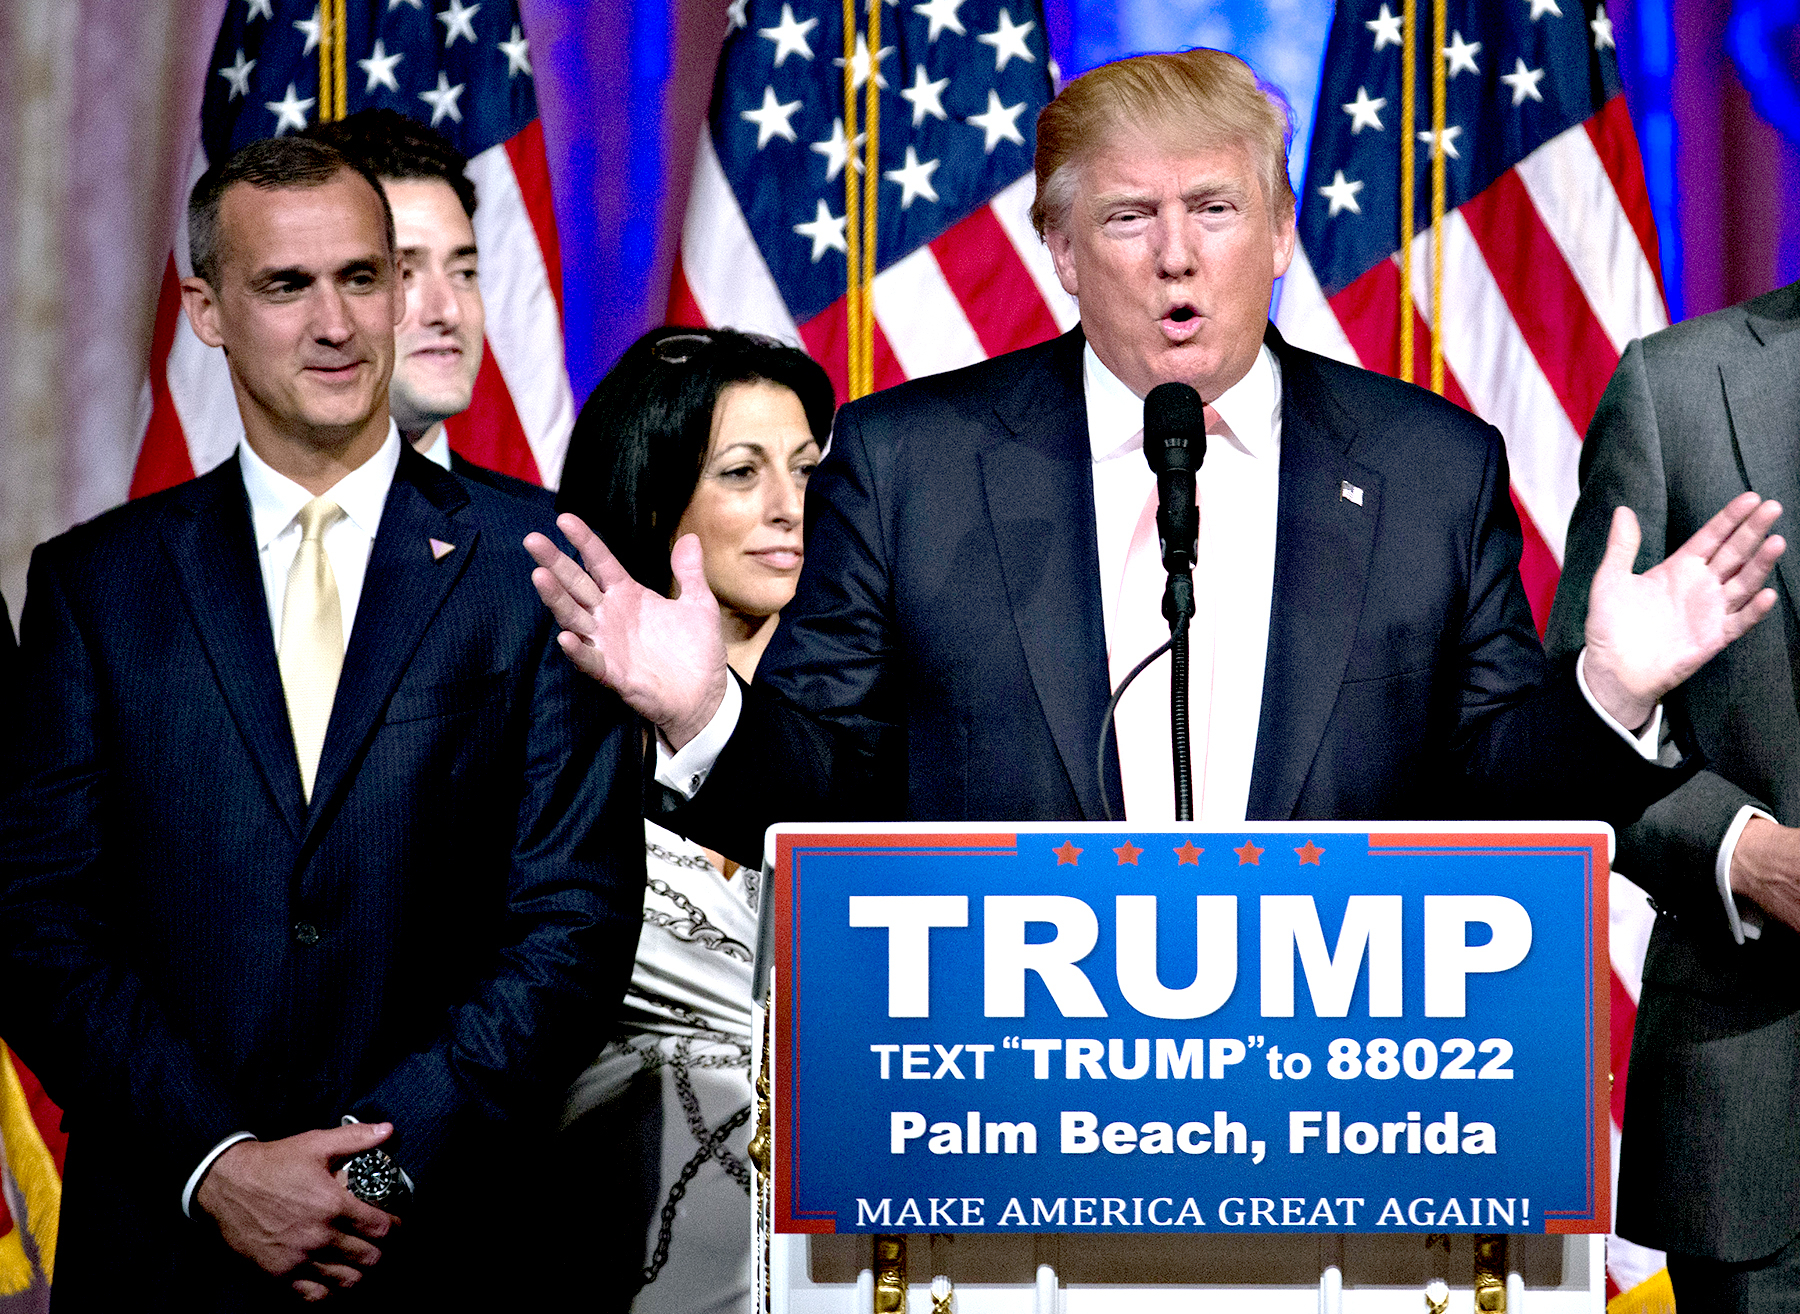 Donald Trump, president and chief executive of Trump Organization Inc. and 2016 Republican presidential candidate, center, speaks during a news conference with Corey Lewandowski, campaign manager for Trump, left, at the Mar-A-Lago Club in Palm Beach, Florida, U.S., on Tuesday, March 15, 2016.